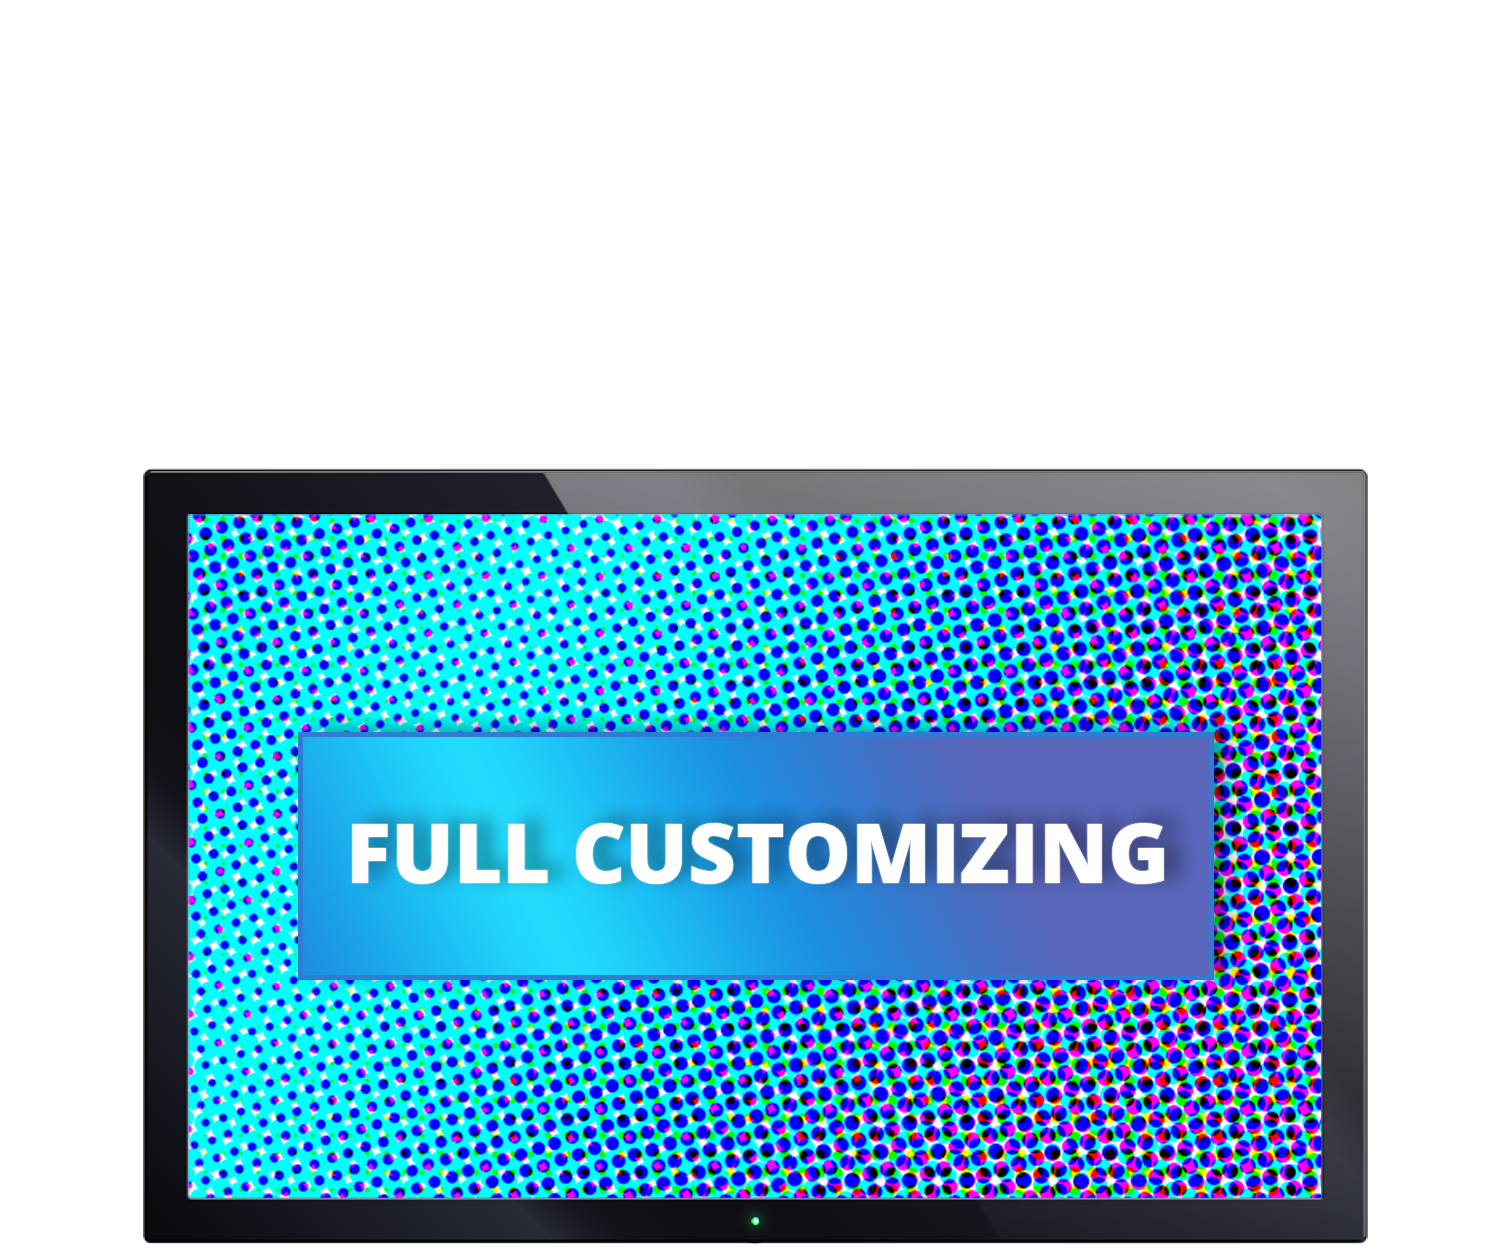 Graphics: LCD Full Customizing